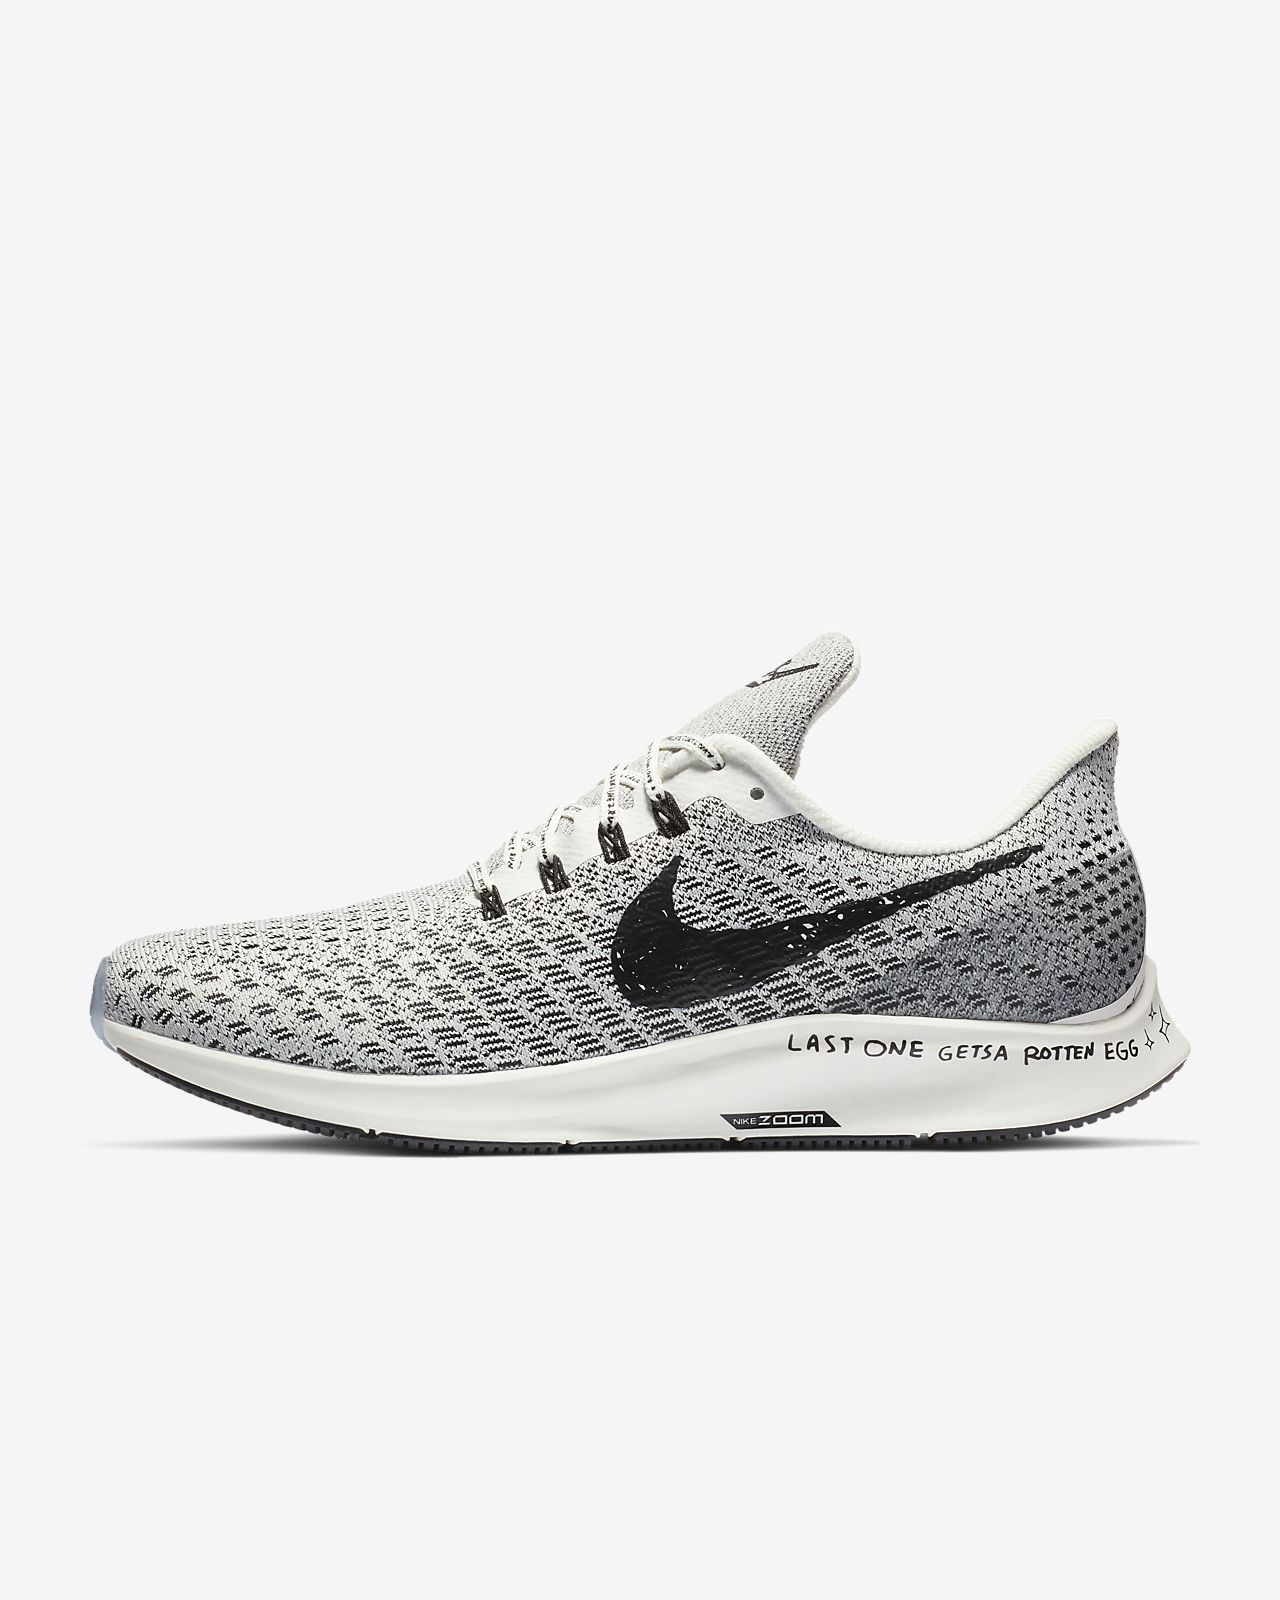 Nike Air Zoom hombre